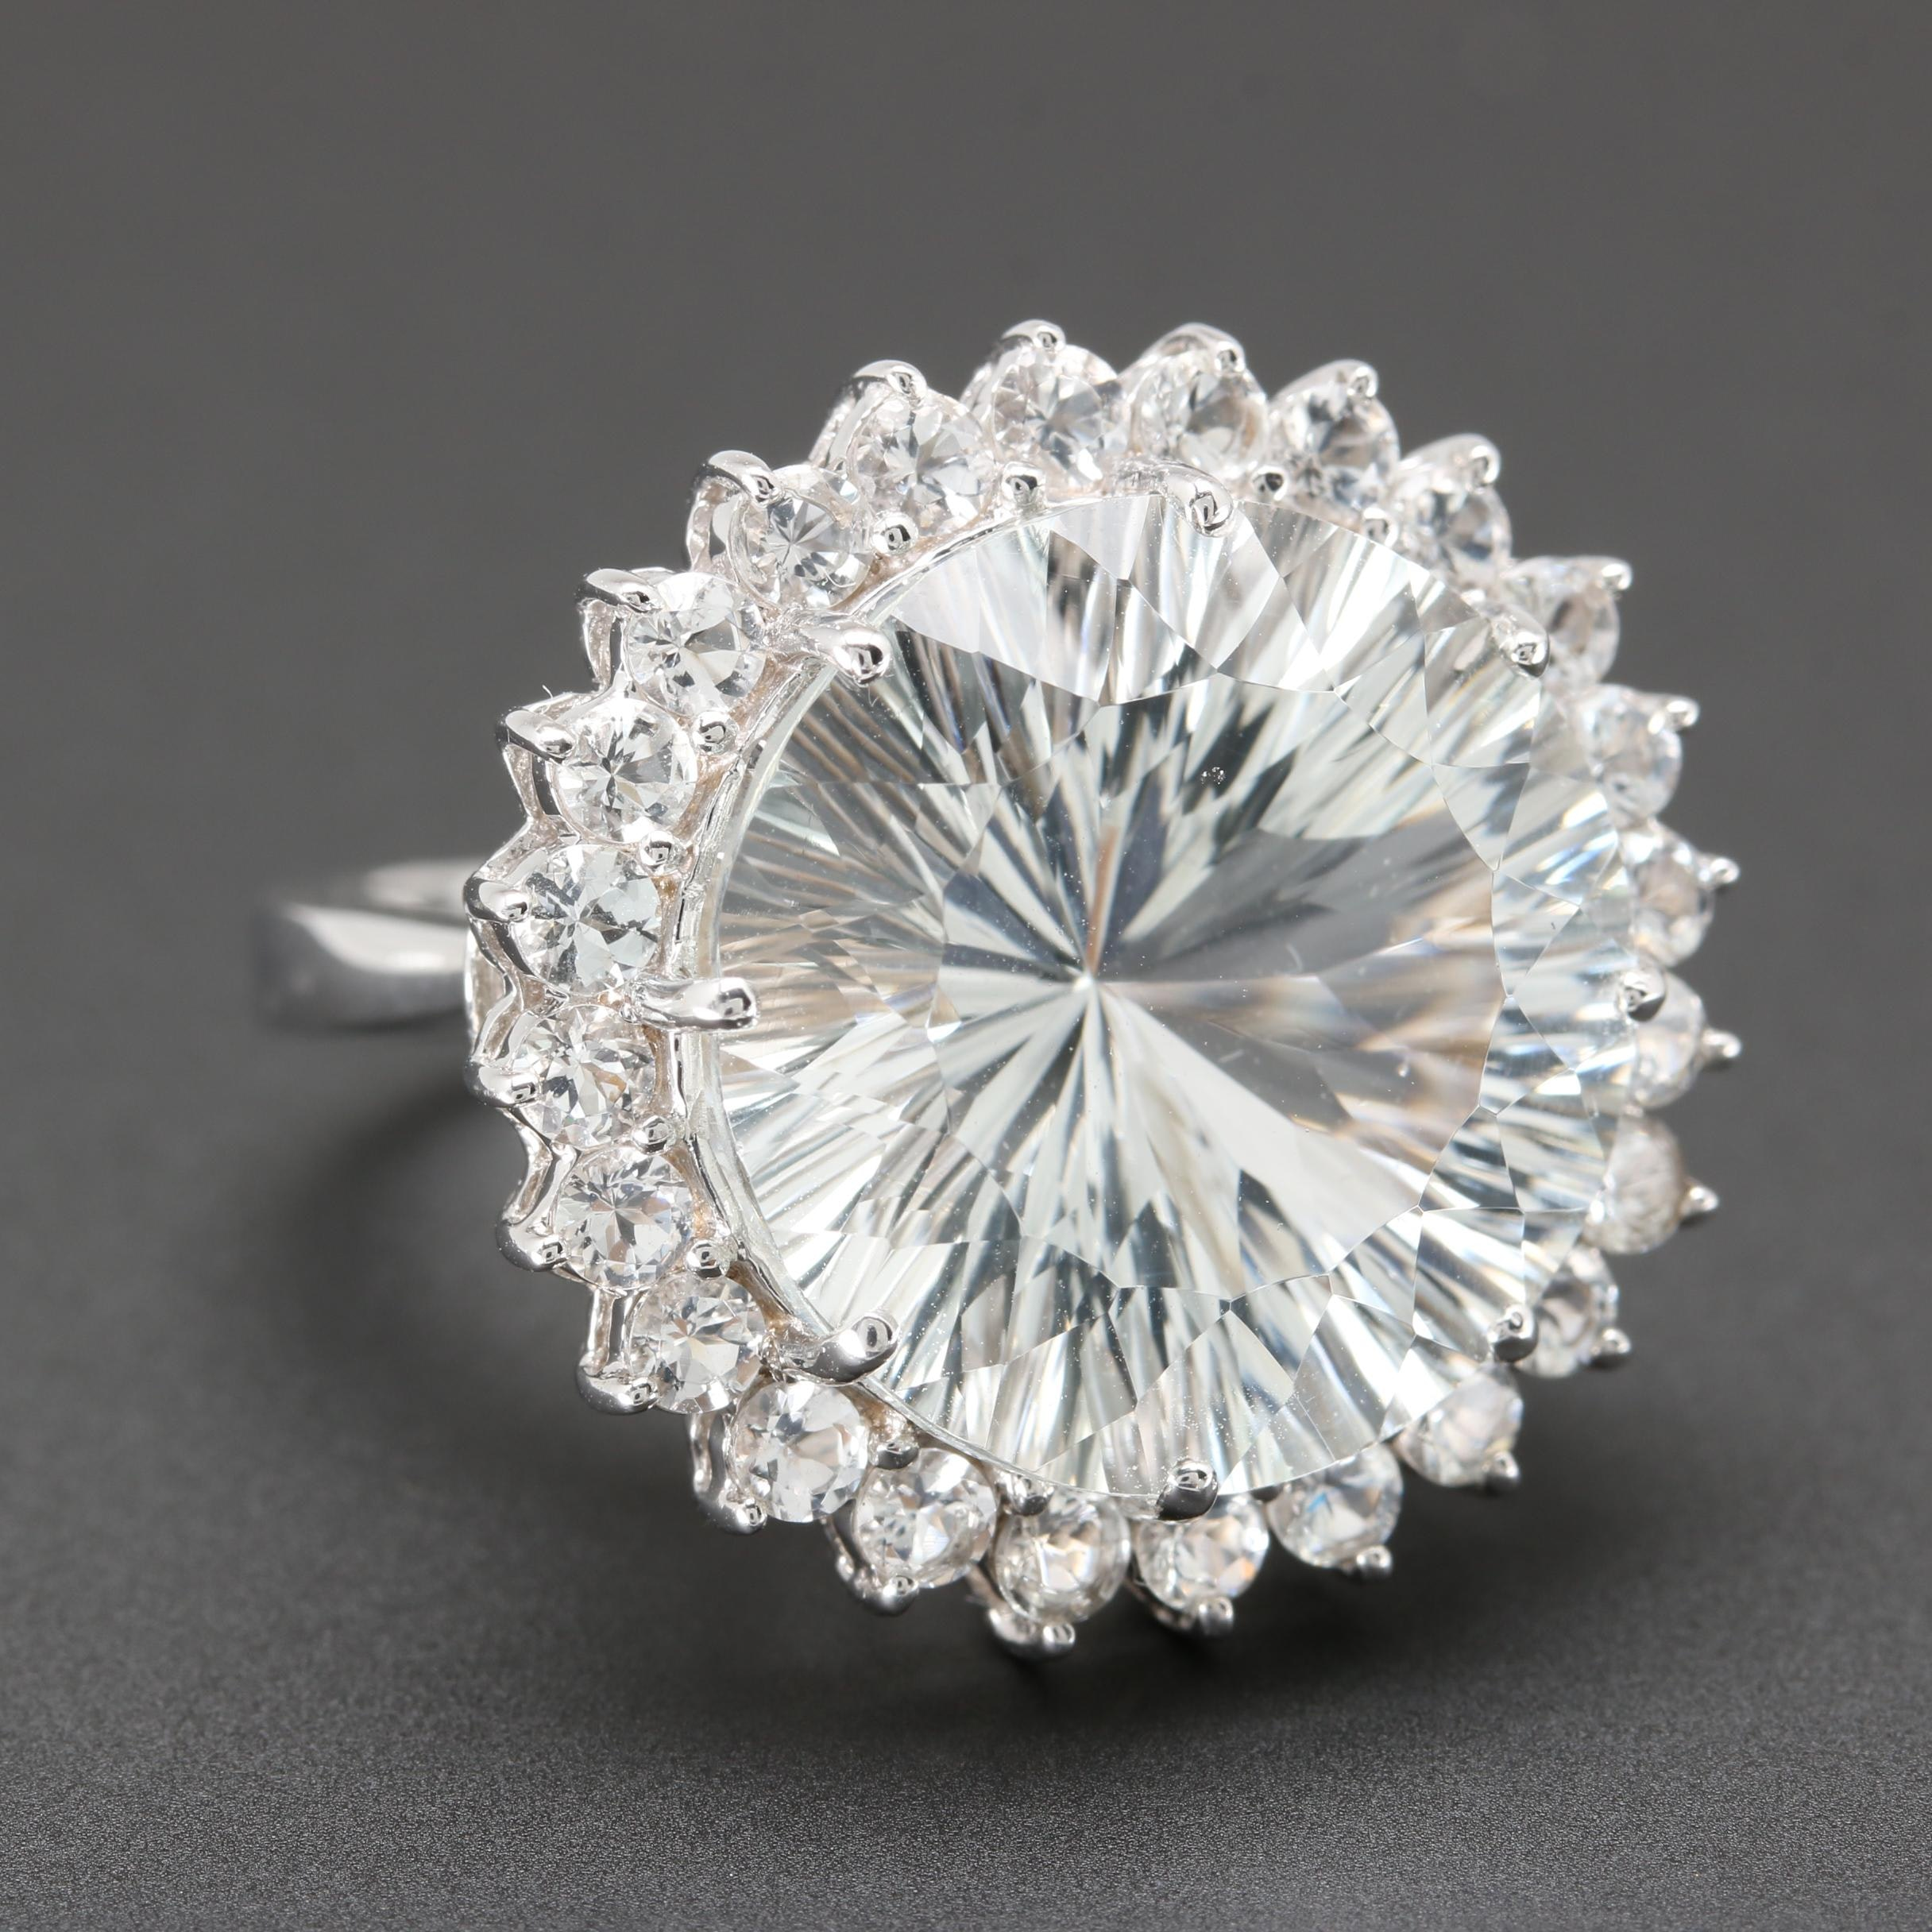 14K White Gold White Topaz Ring